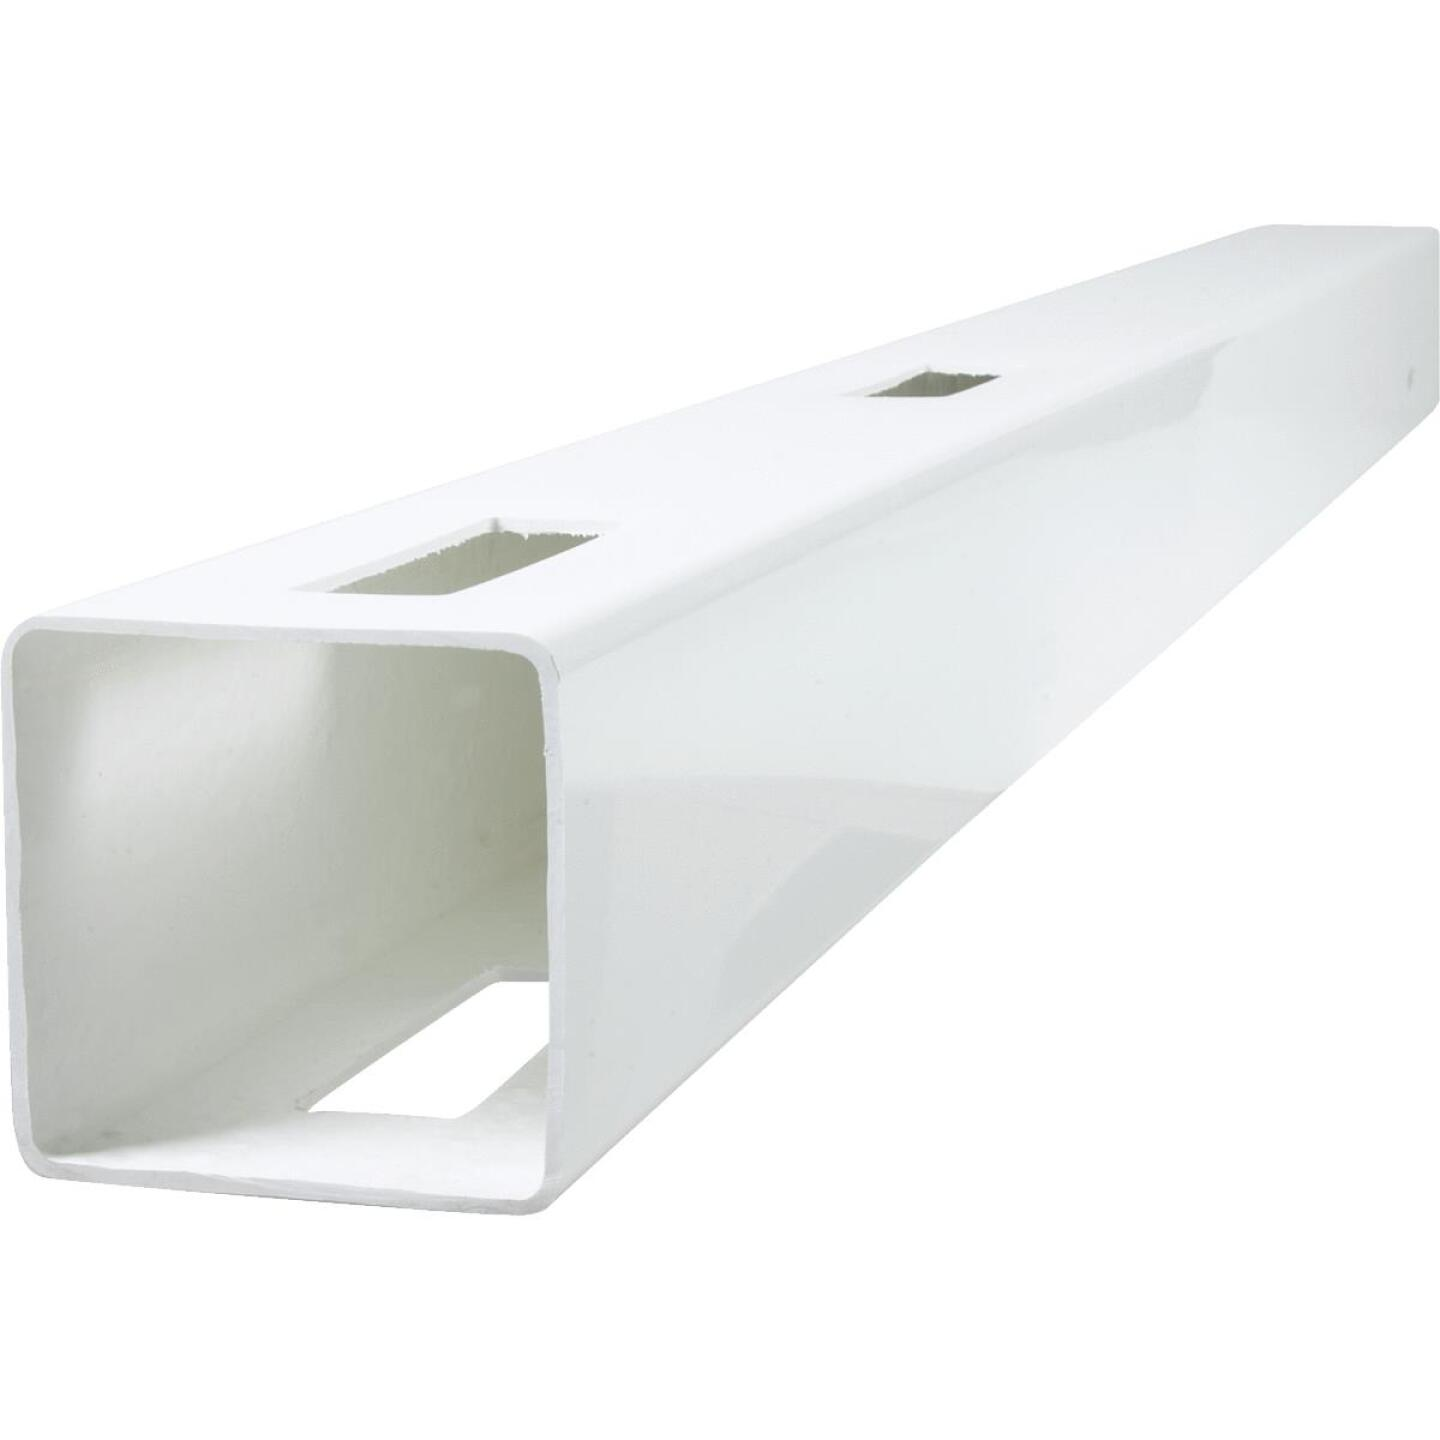 Outdoor Essentials 5 In. x 5 In. x 60 In. White Line 2-Rail Fence Vinyl Post Image 3